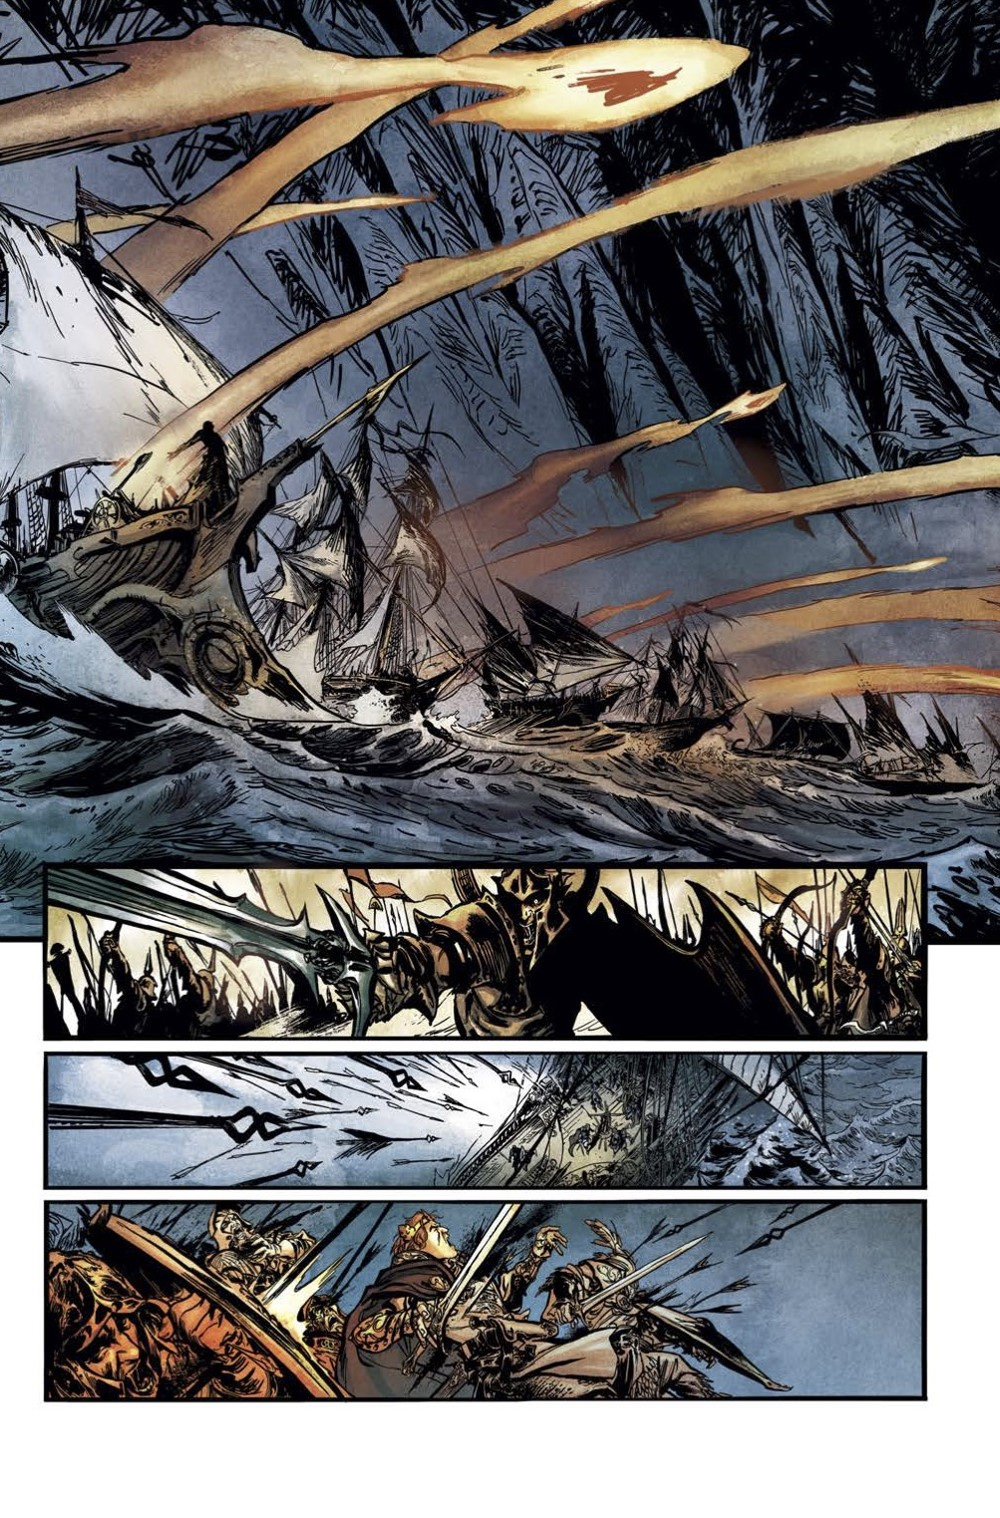 Elric-The-Deaming-City-2-Spread-4 ComicList Previews: ELRIC THE DREAMING CITY #2